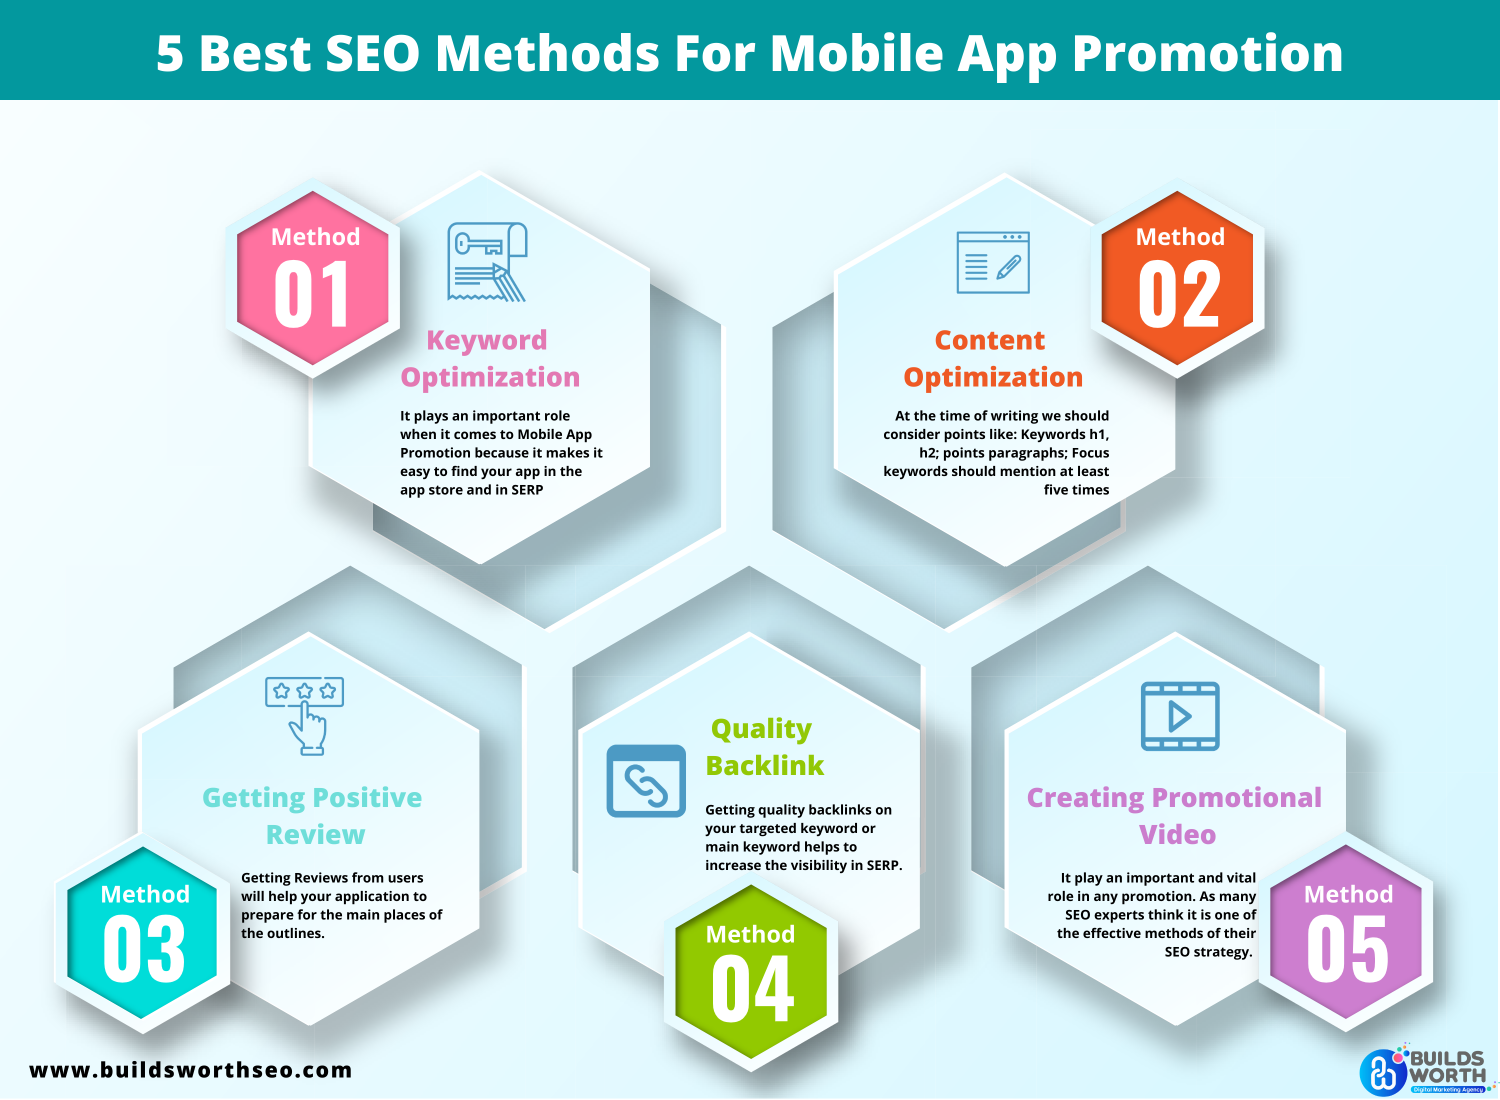 5 Best SEO Methods For Mobile App Promotion Infographic